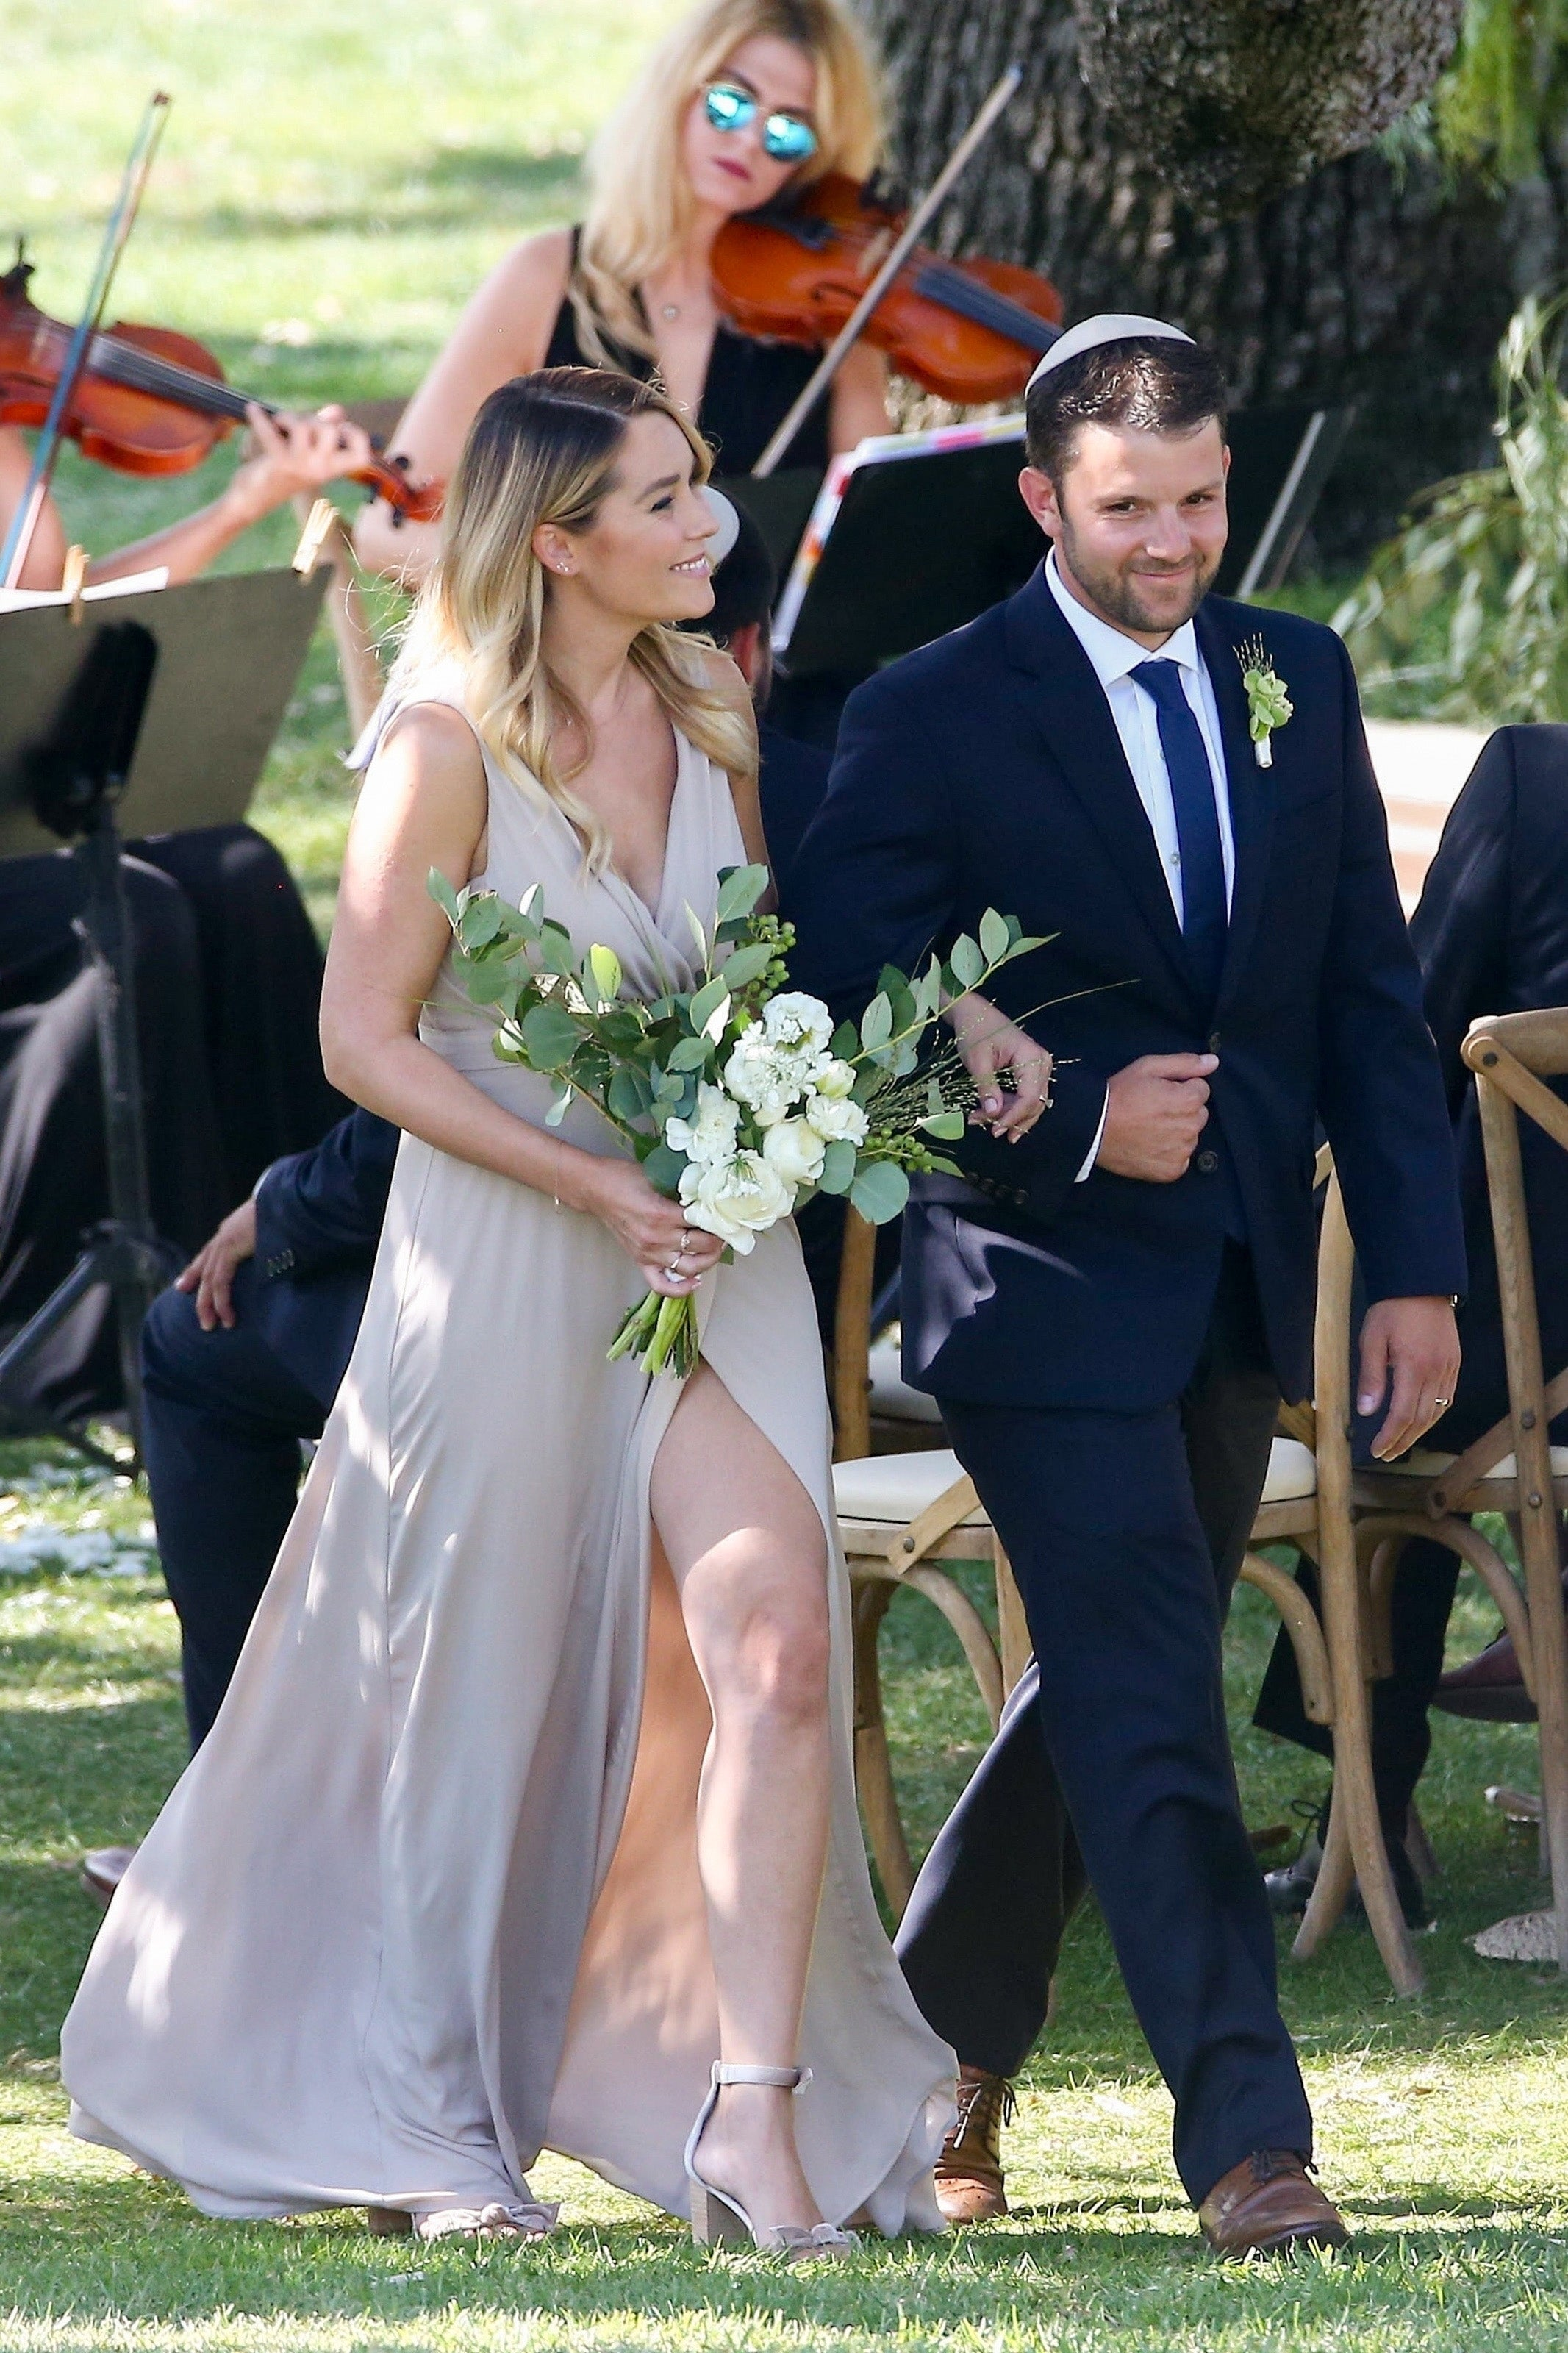 Lauren Conrad Is A Gorgeous Bridesmaid Six Weeks After Giving Birth To Son Liam Ktvb Com